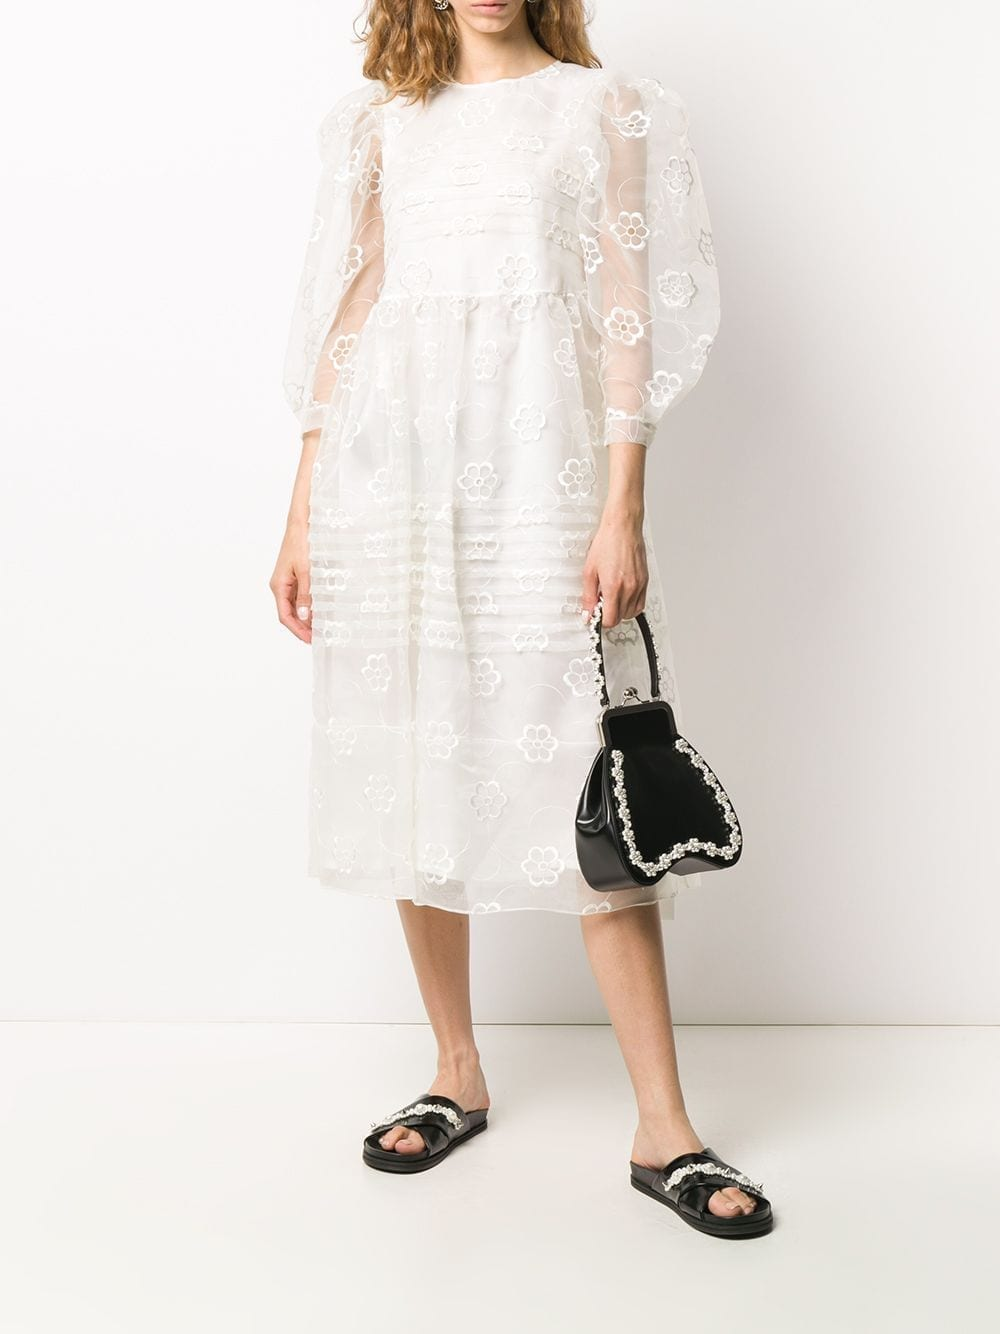 SIMONE ROCHA Floral Embroidered Puff Sleeves Dress